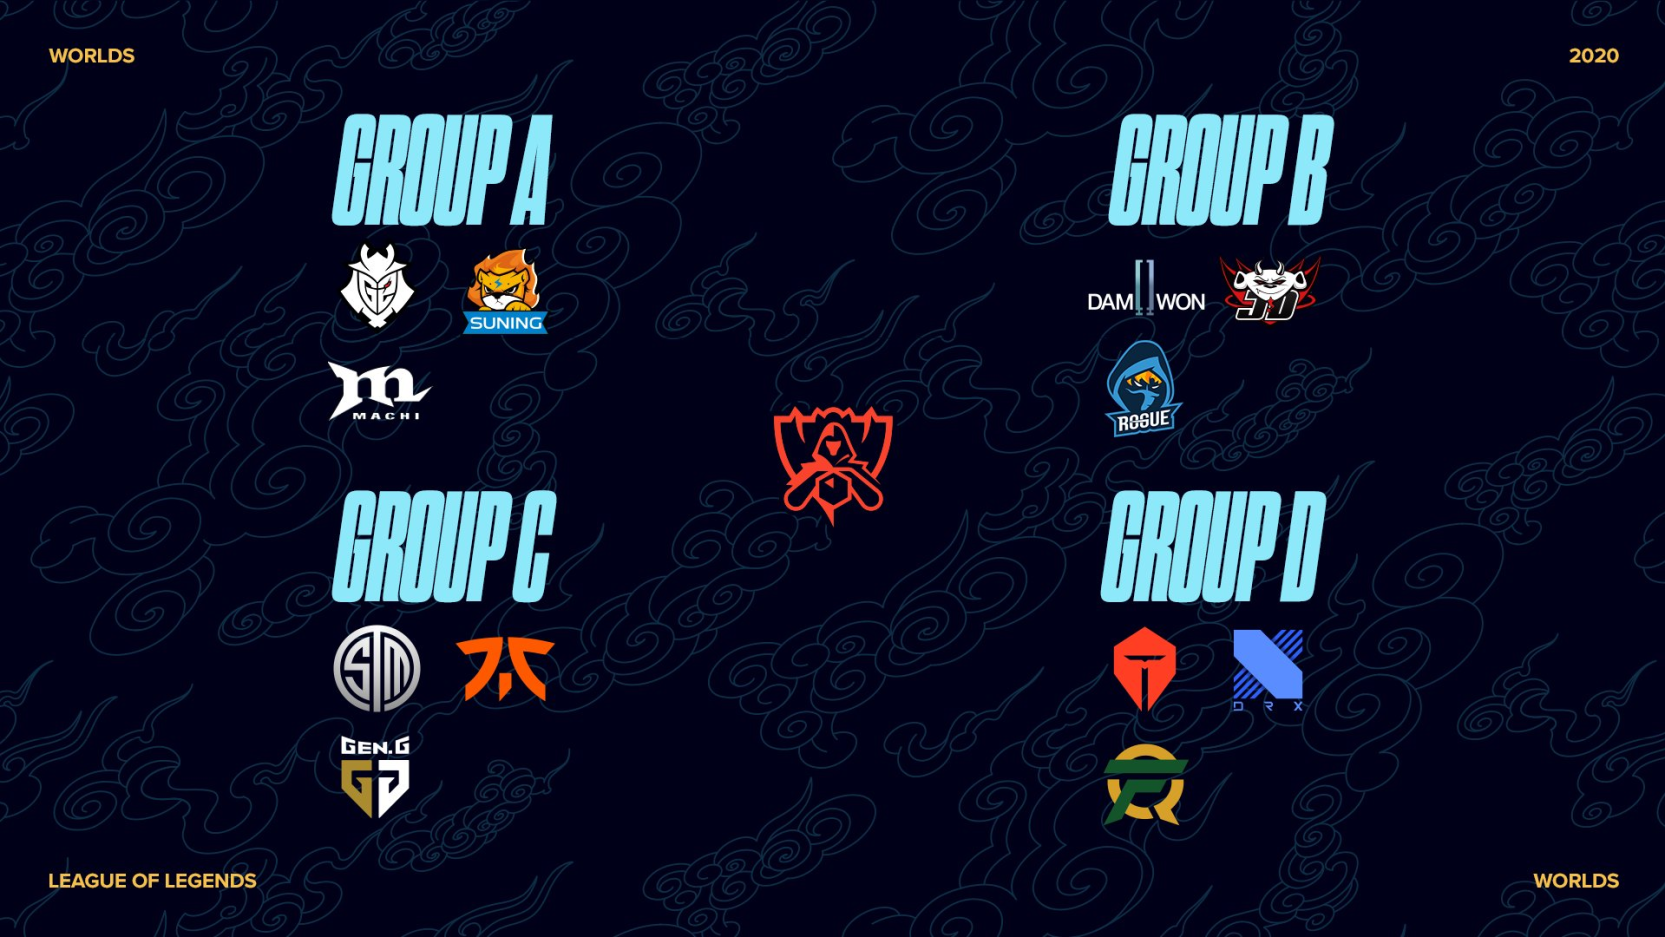 Day #5 | Thoughts LoL Worlds groups draw 2020